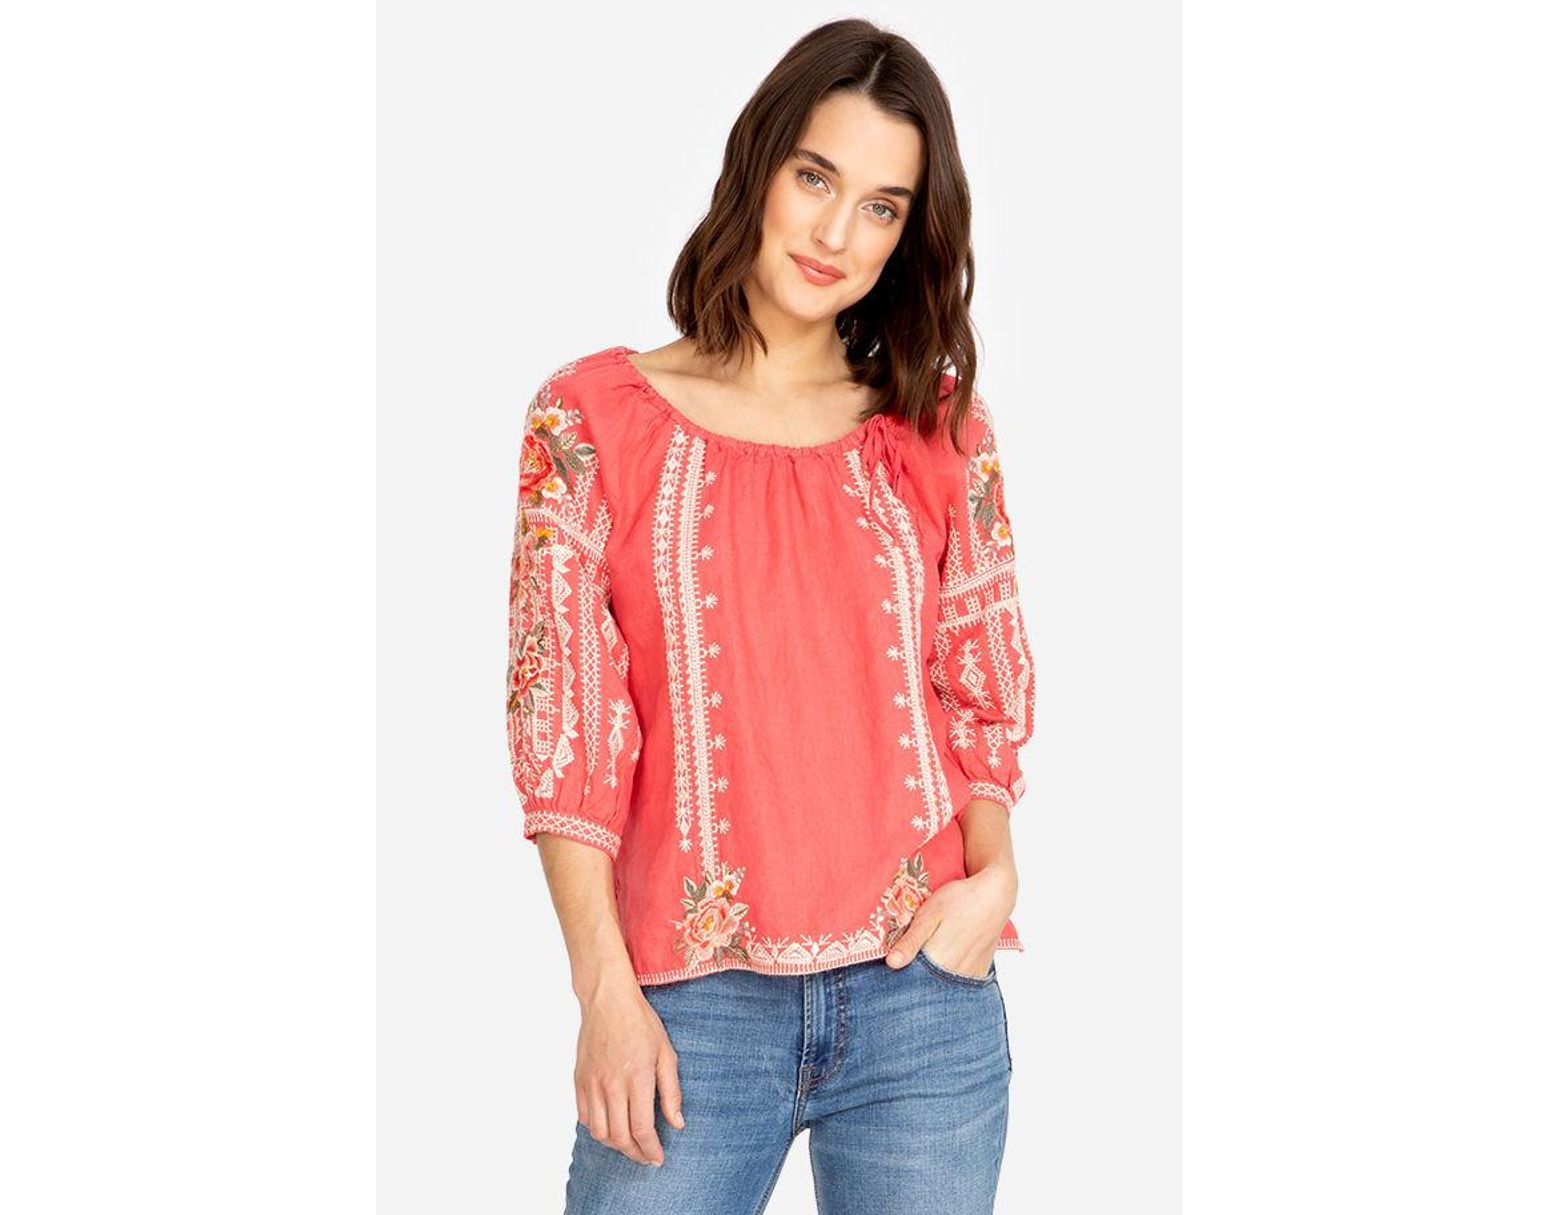 f66d3d483df792 Johnny Was Paola Peasant Tie Blouse in Pink - Lyst